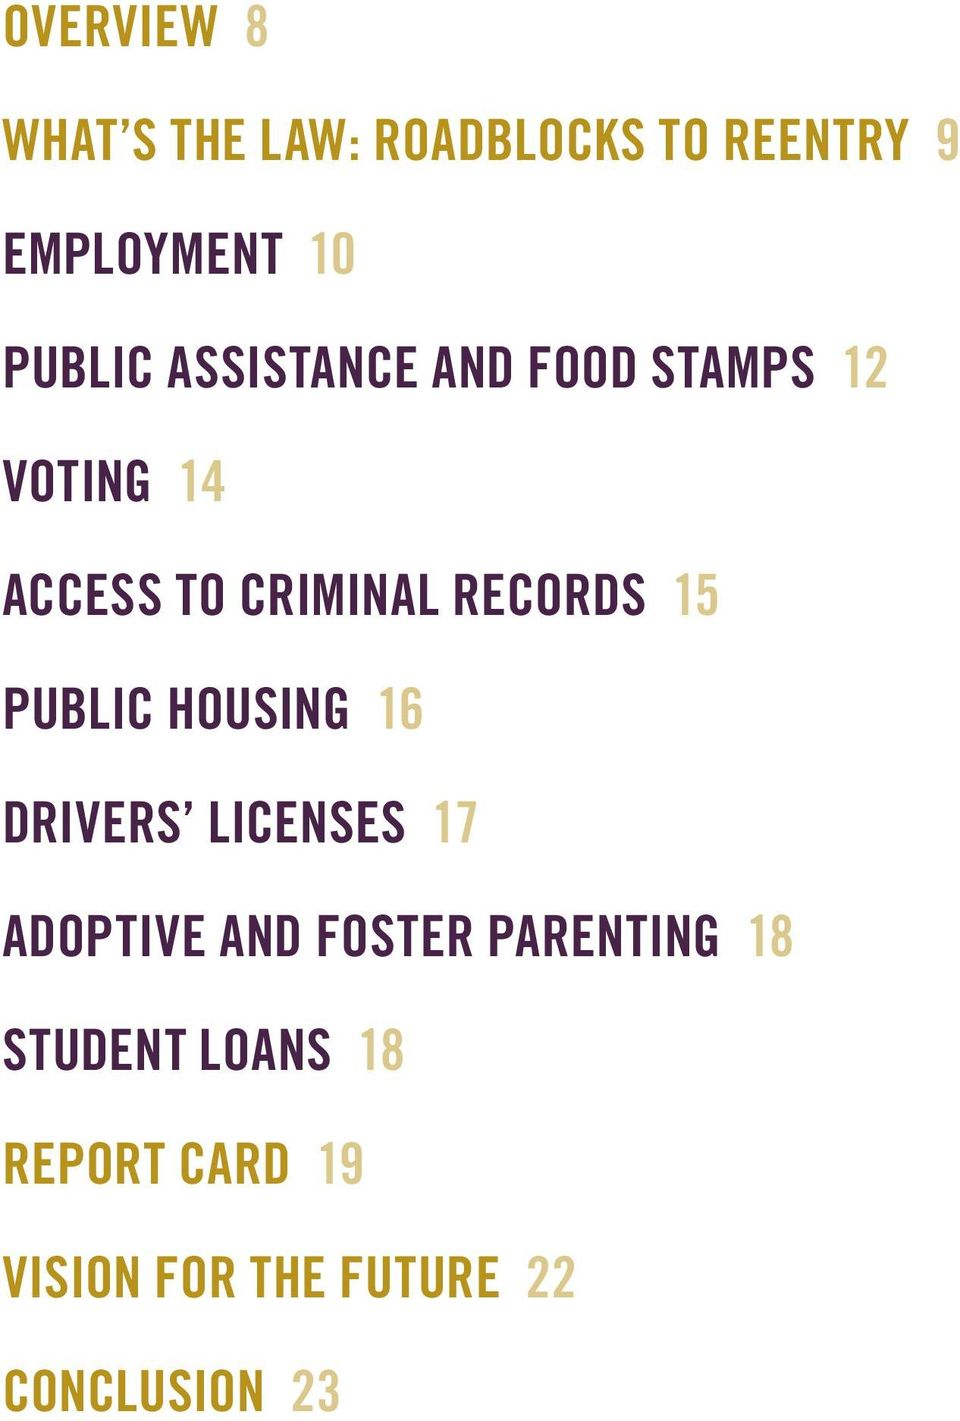 RECORDS 15 PUBLIC HOUSING 16 DRIVERS LICENSES 17 ADOPTIVE AND FOSTER